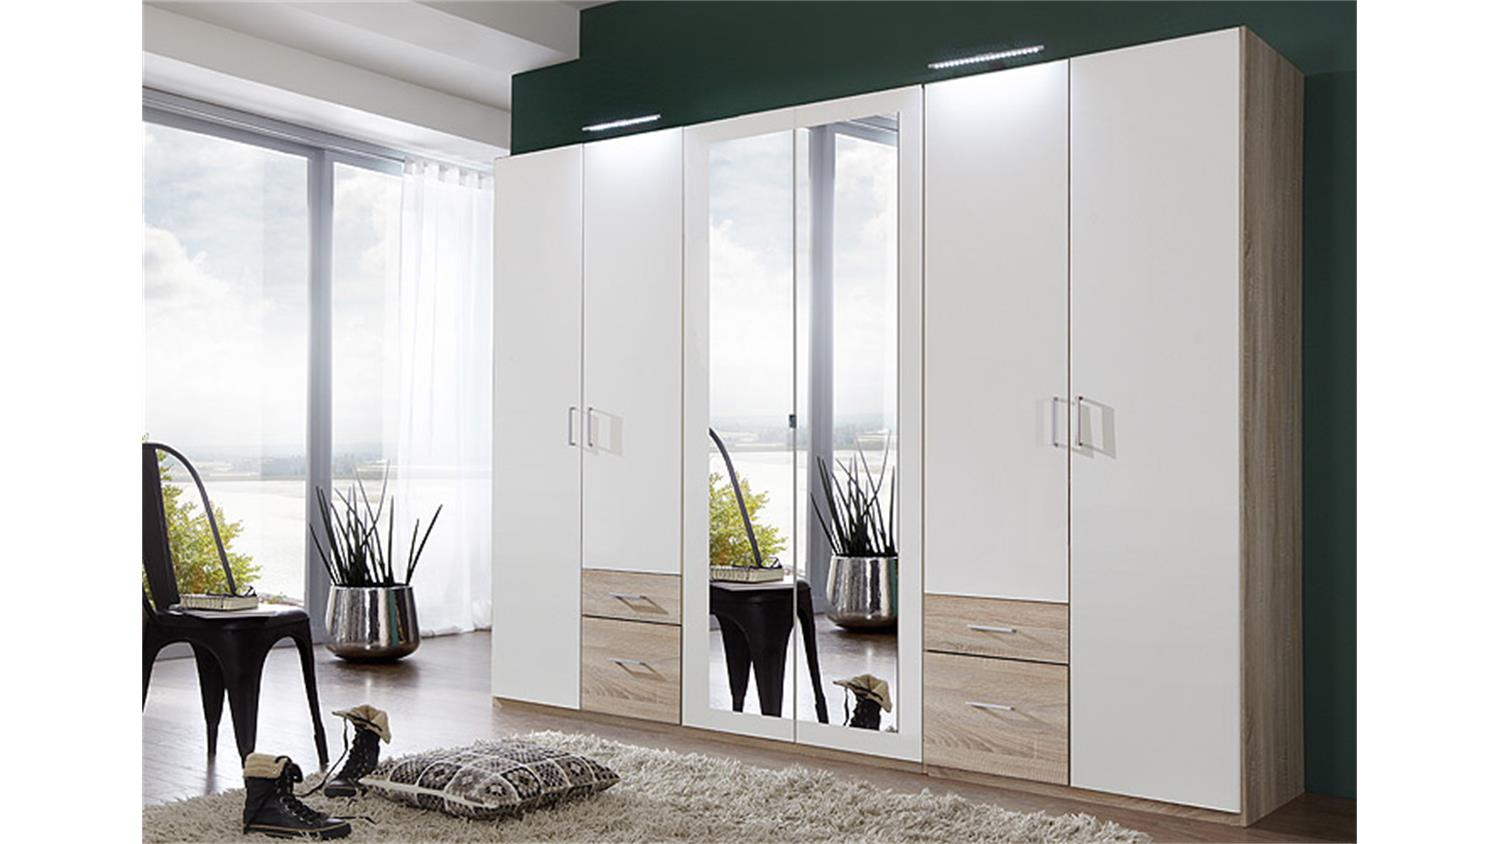 kleiderschrank fly front wei korpus eiche s gerau spiegel b 270 cm. Black Bedroom Furniture Sets. Home Design Ideas